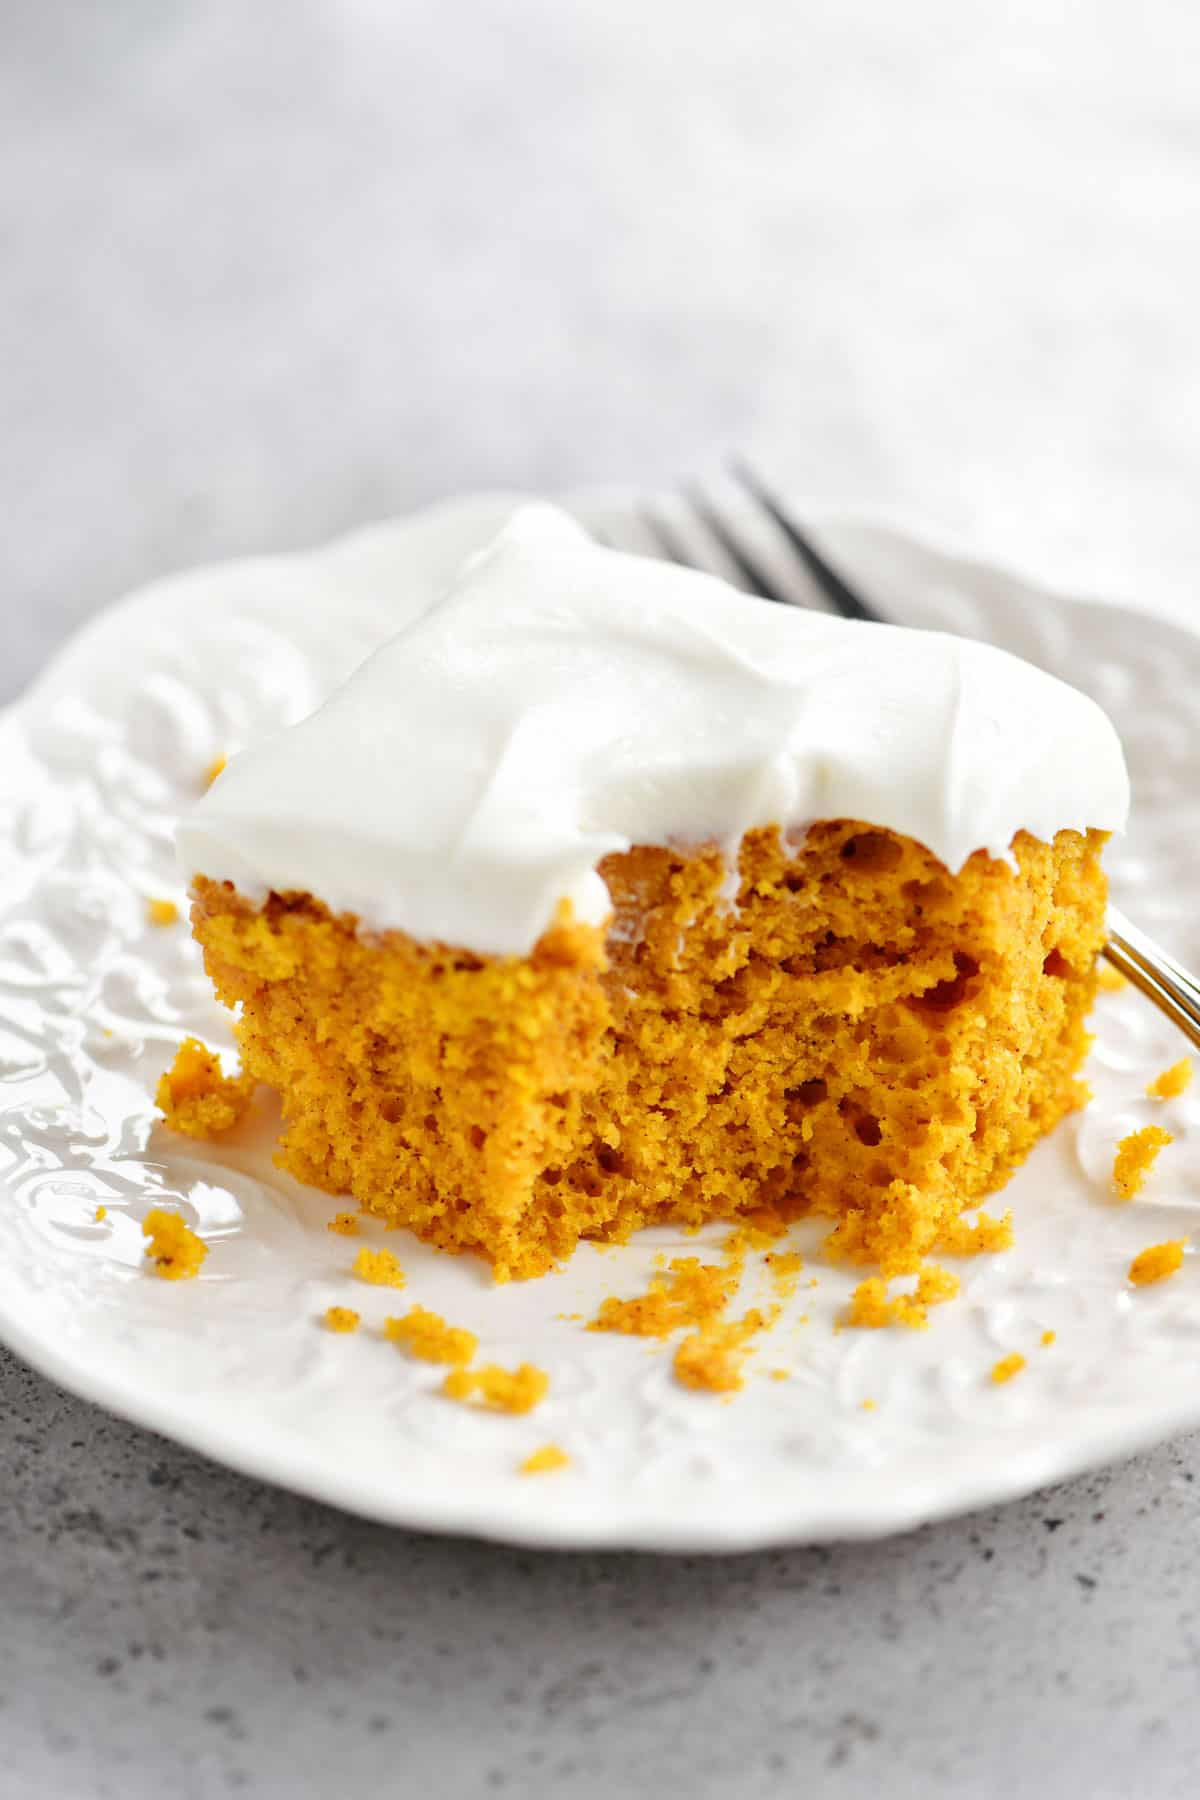 slice of pumpkin bake with bite removed